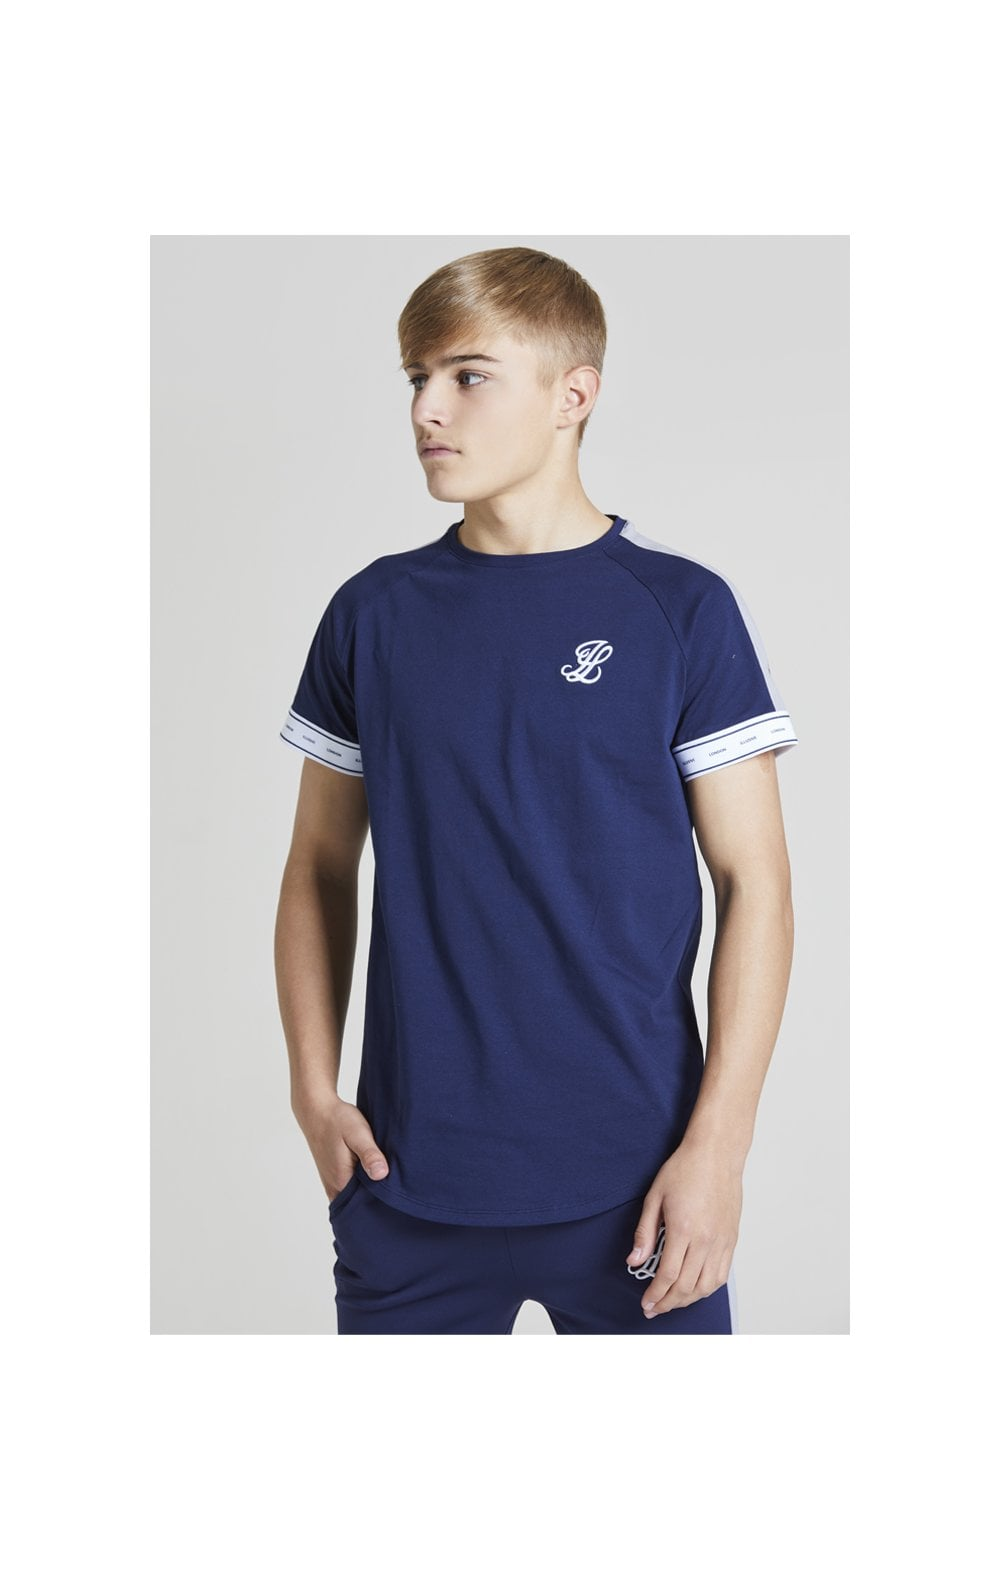 Load image into Gallery viewer, Illusive London Panel Tech Tee - Navy & Grey (1)